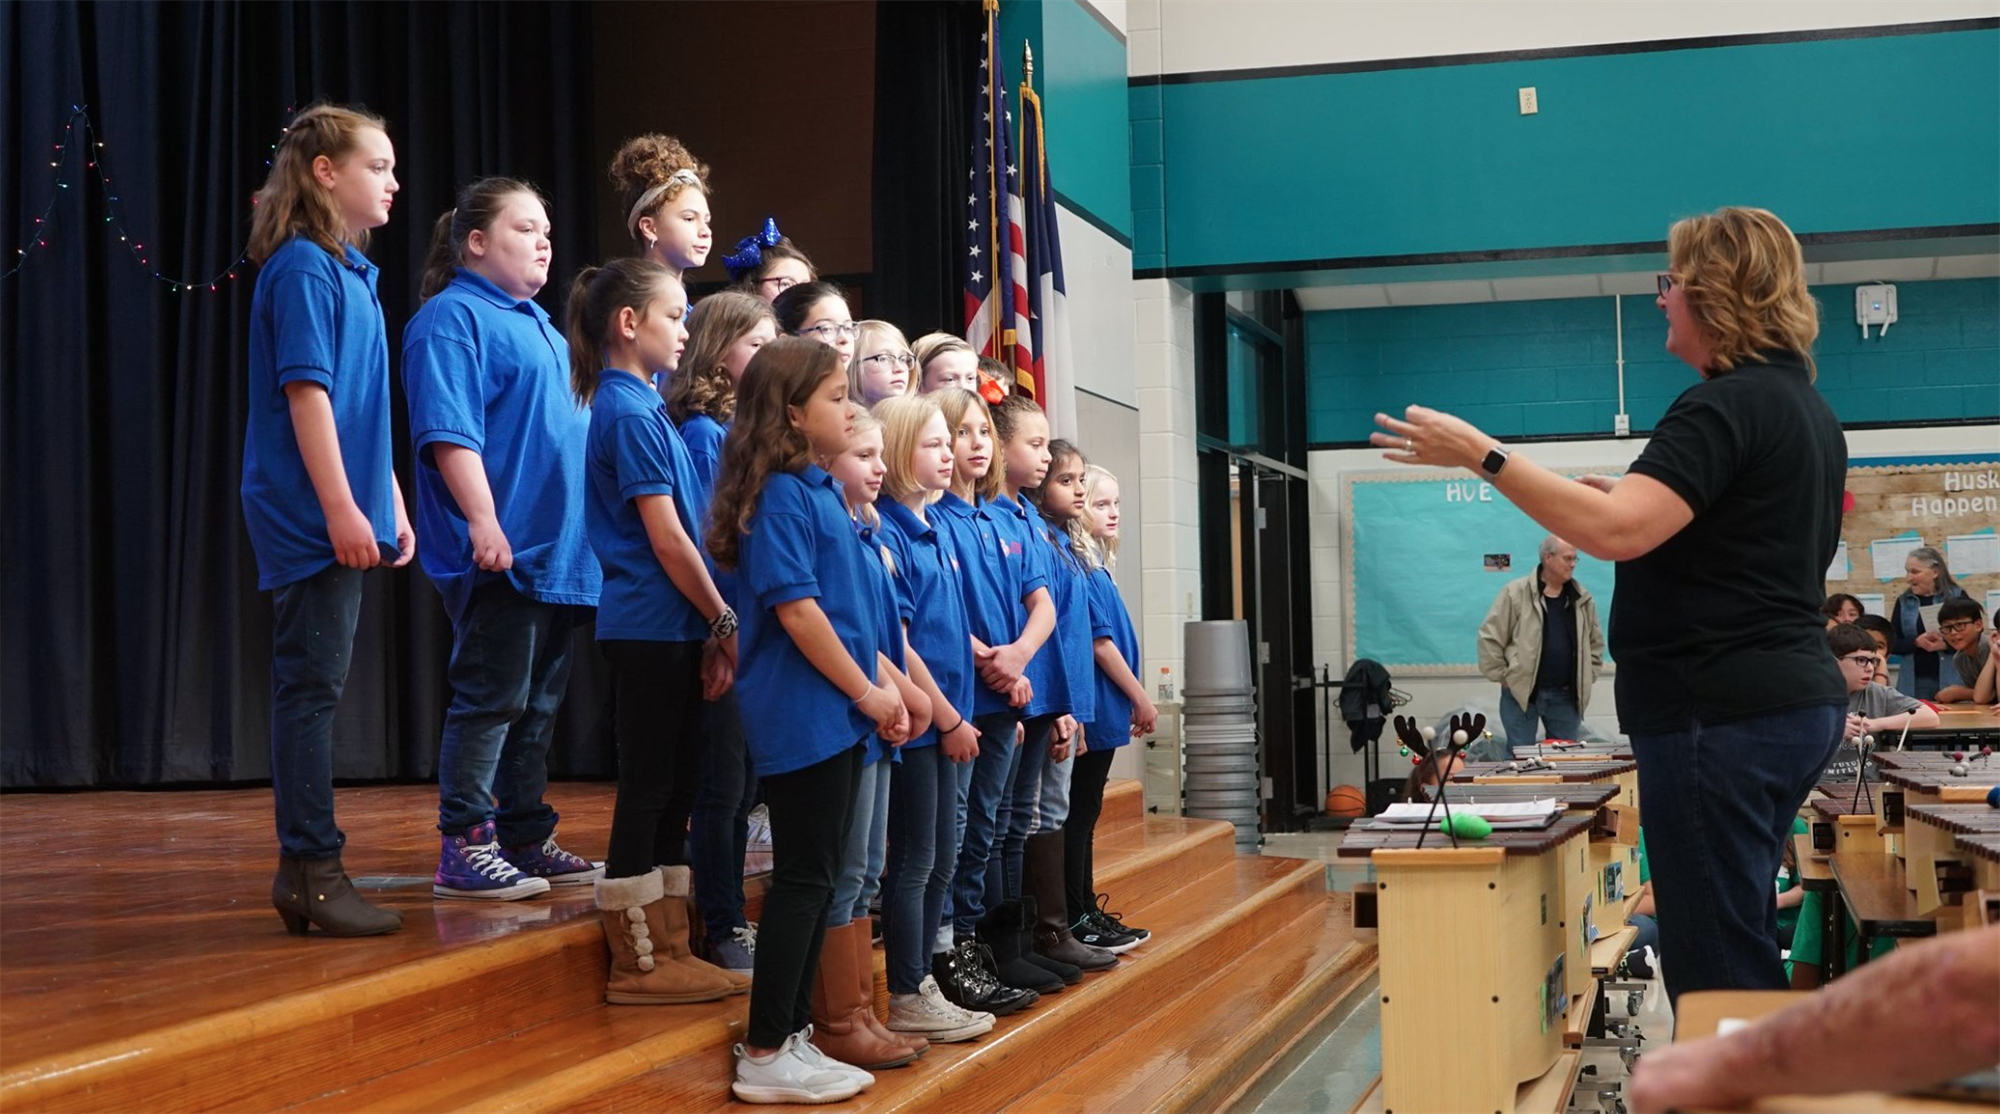 Students sing at benefit concert at Hebron Valley Elementary. 2019